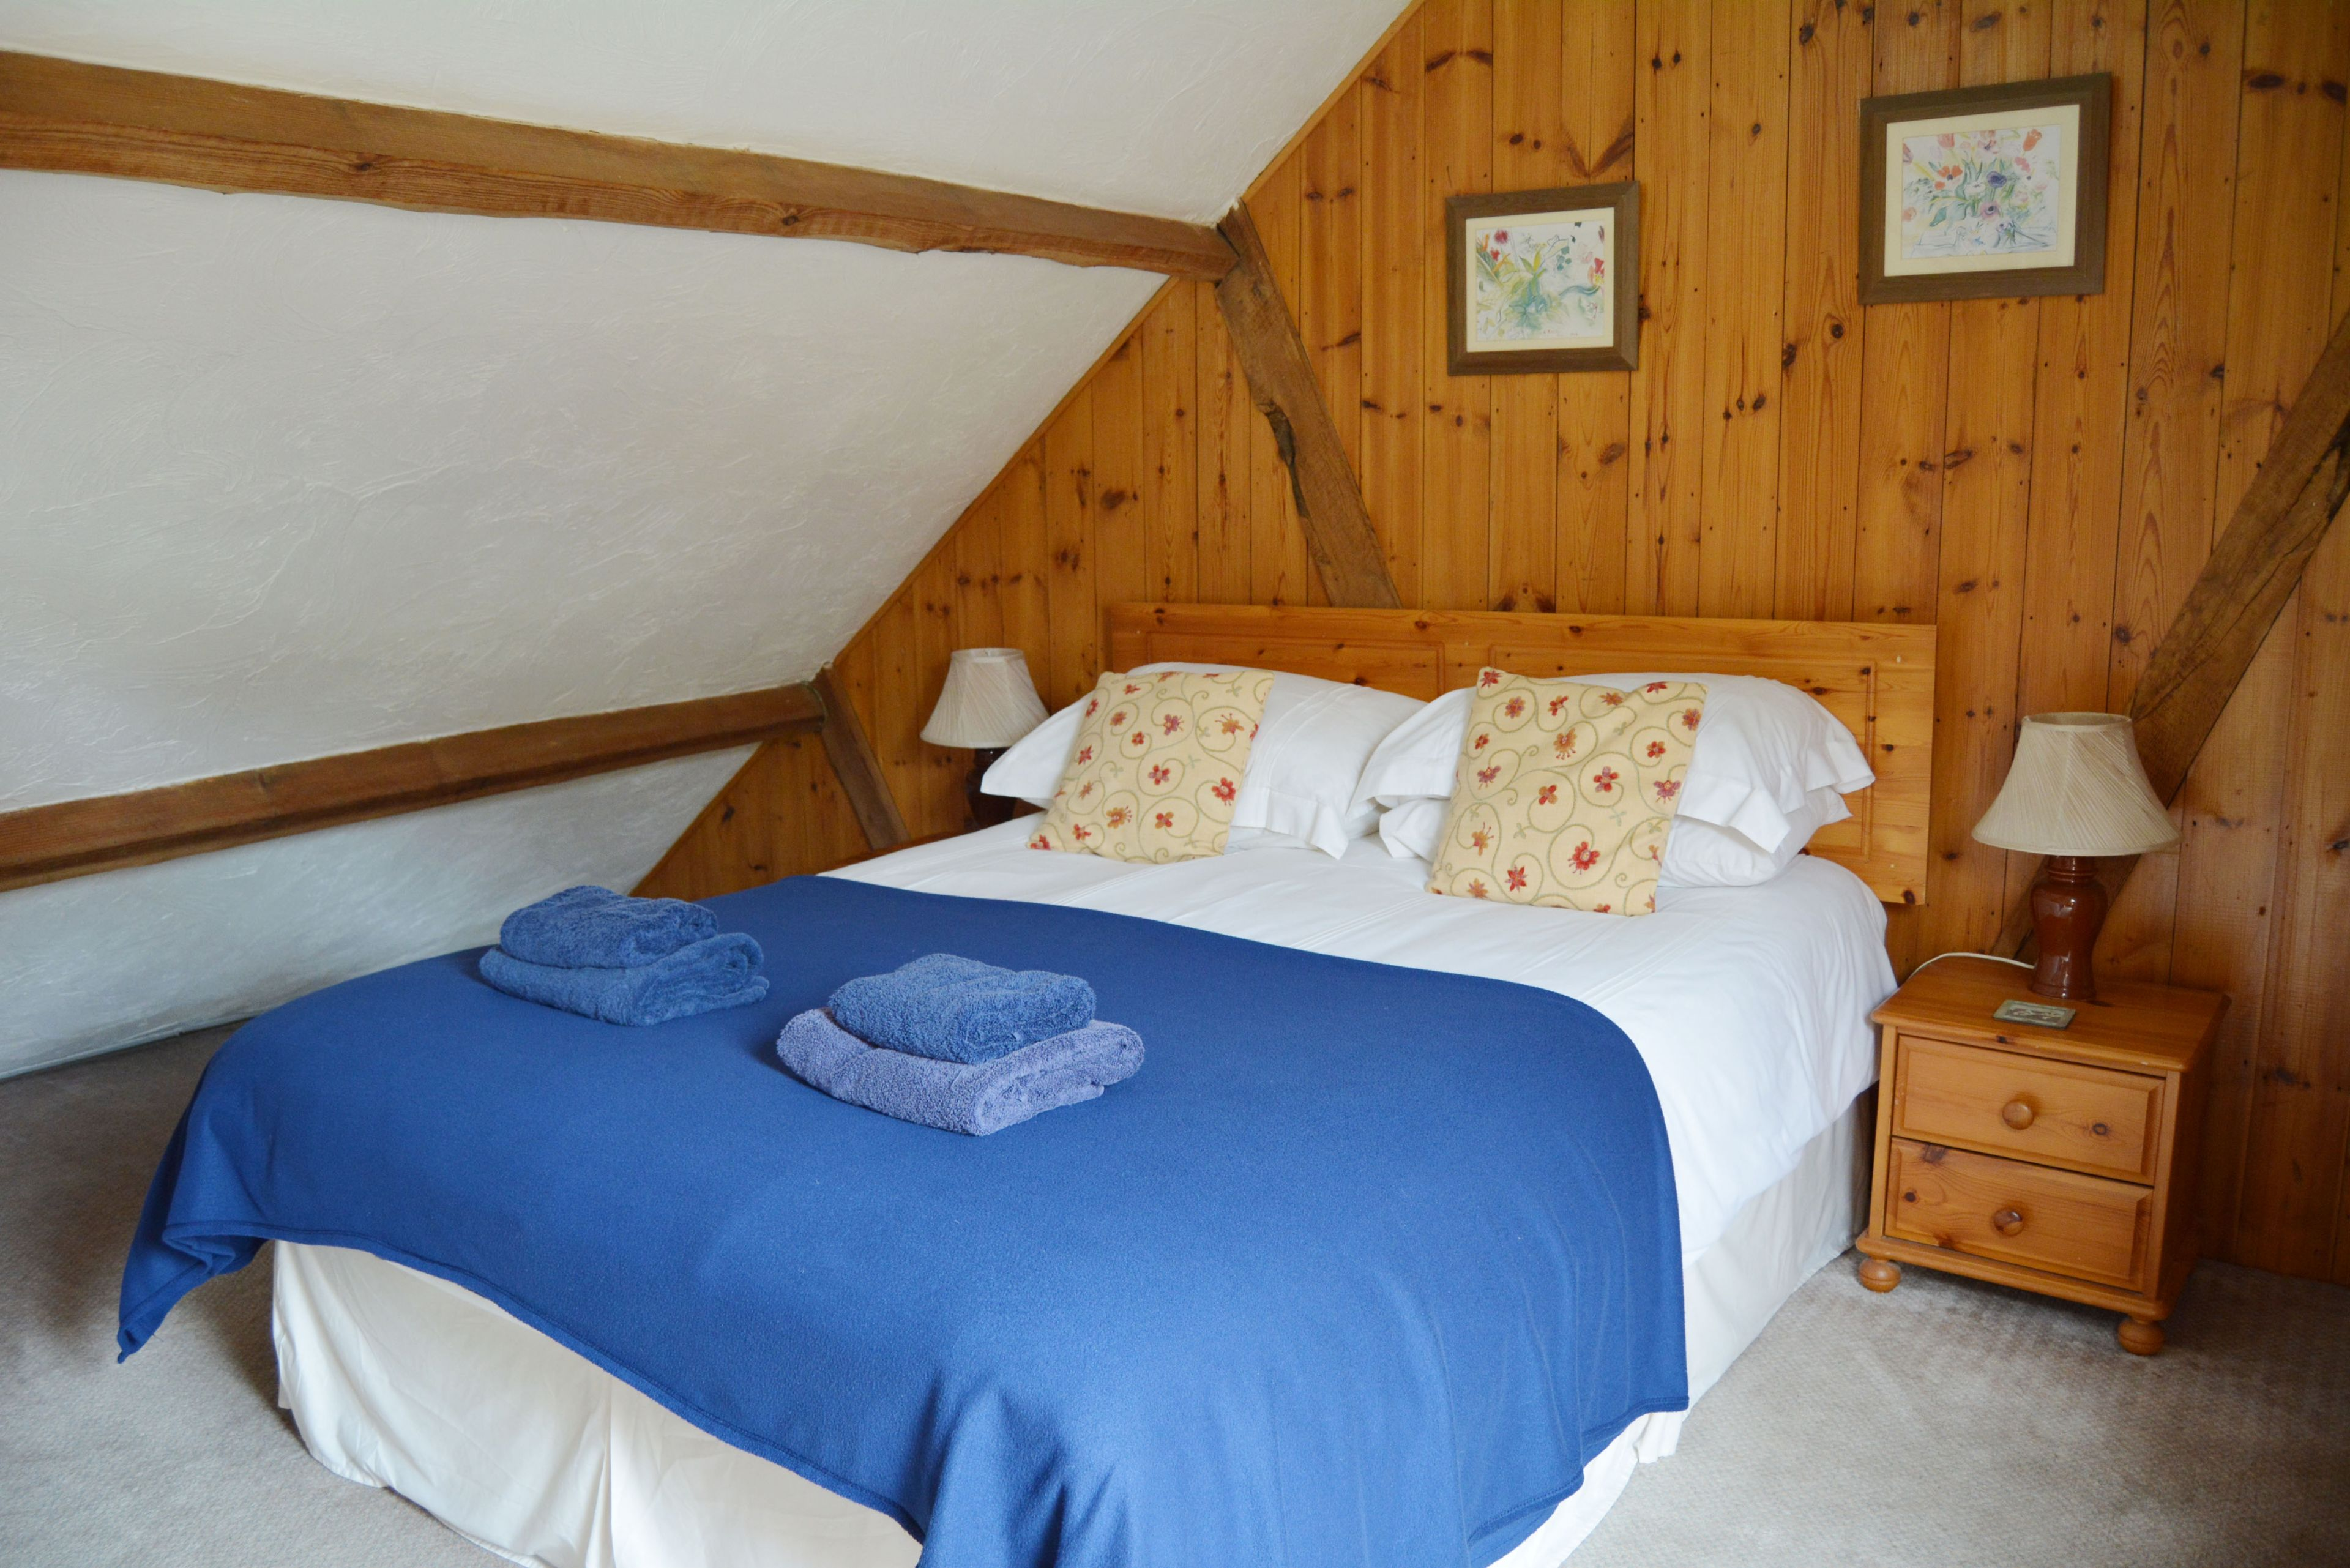 First floor: Galleried double bedroom with 5' bed